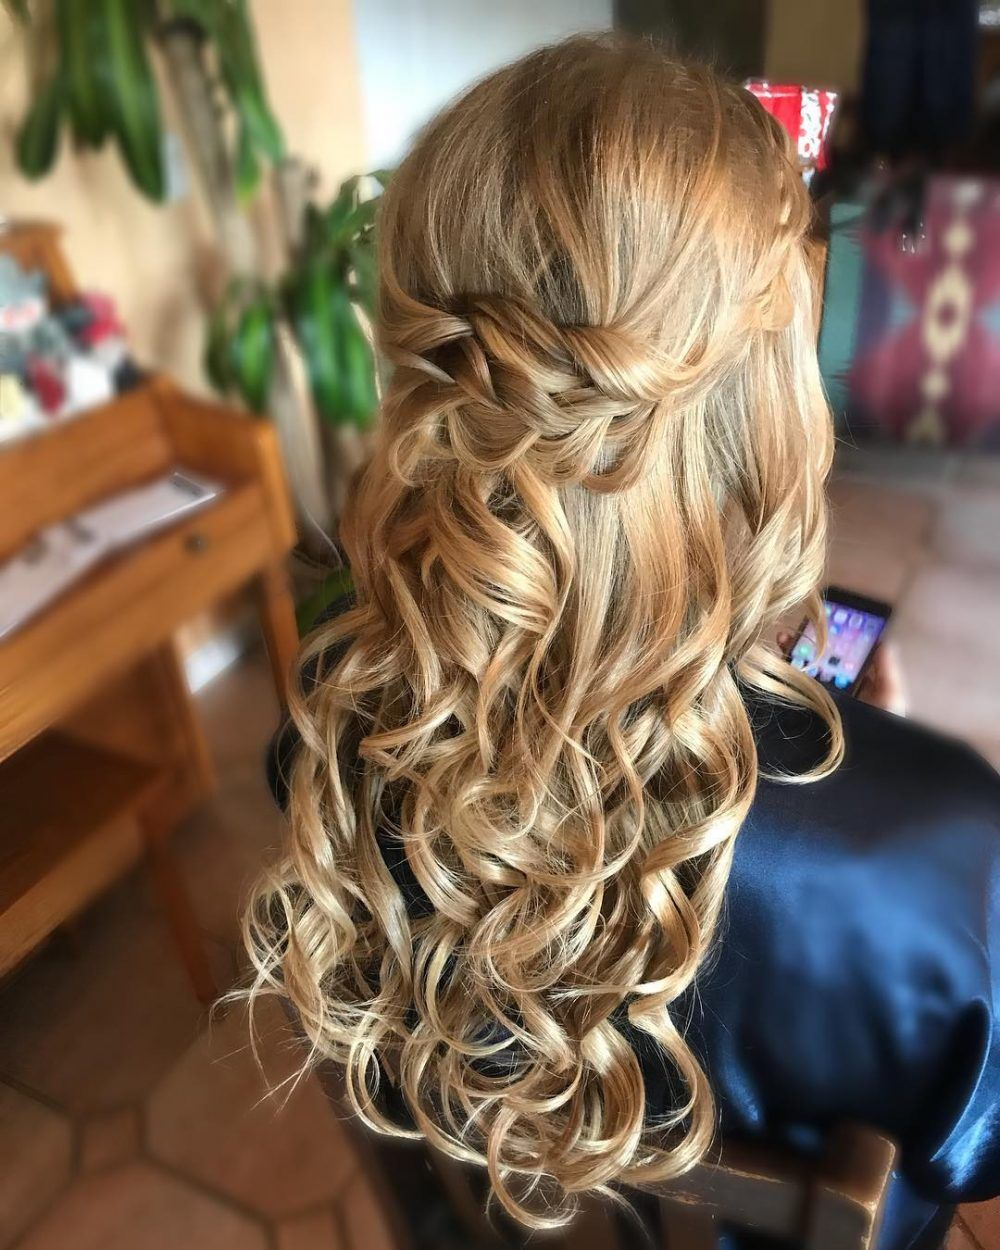 27 gorgeous wedding hairstyles for long hair | photography